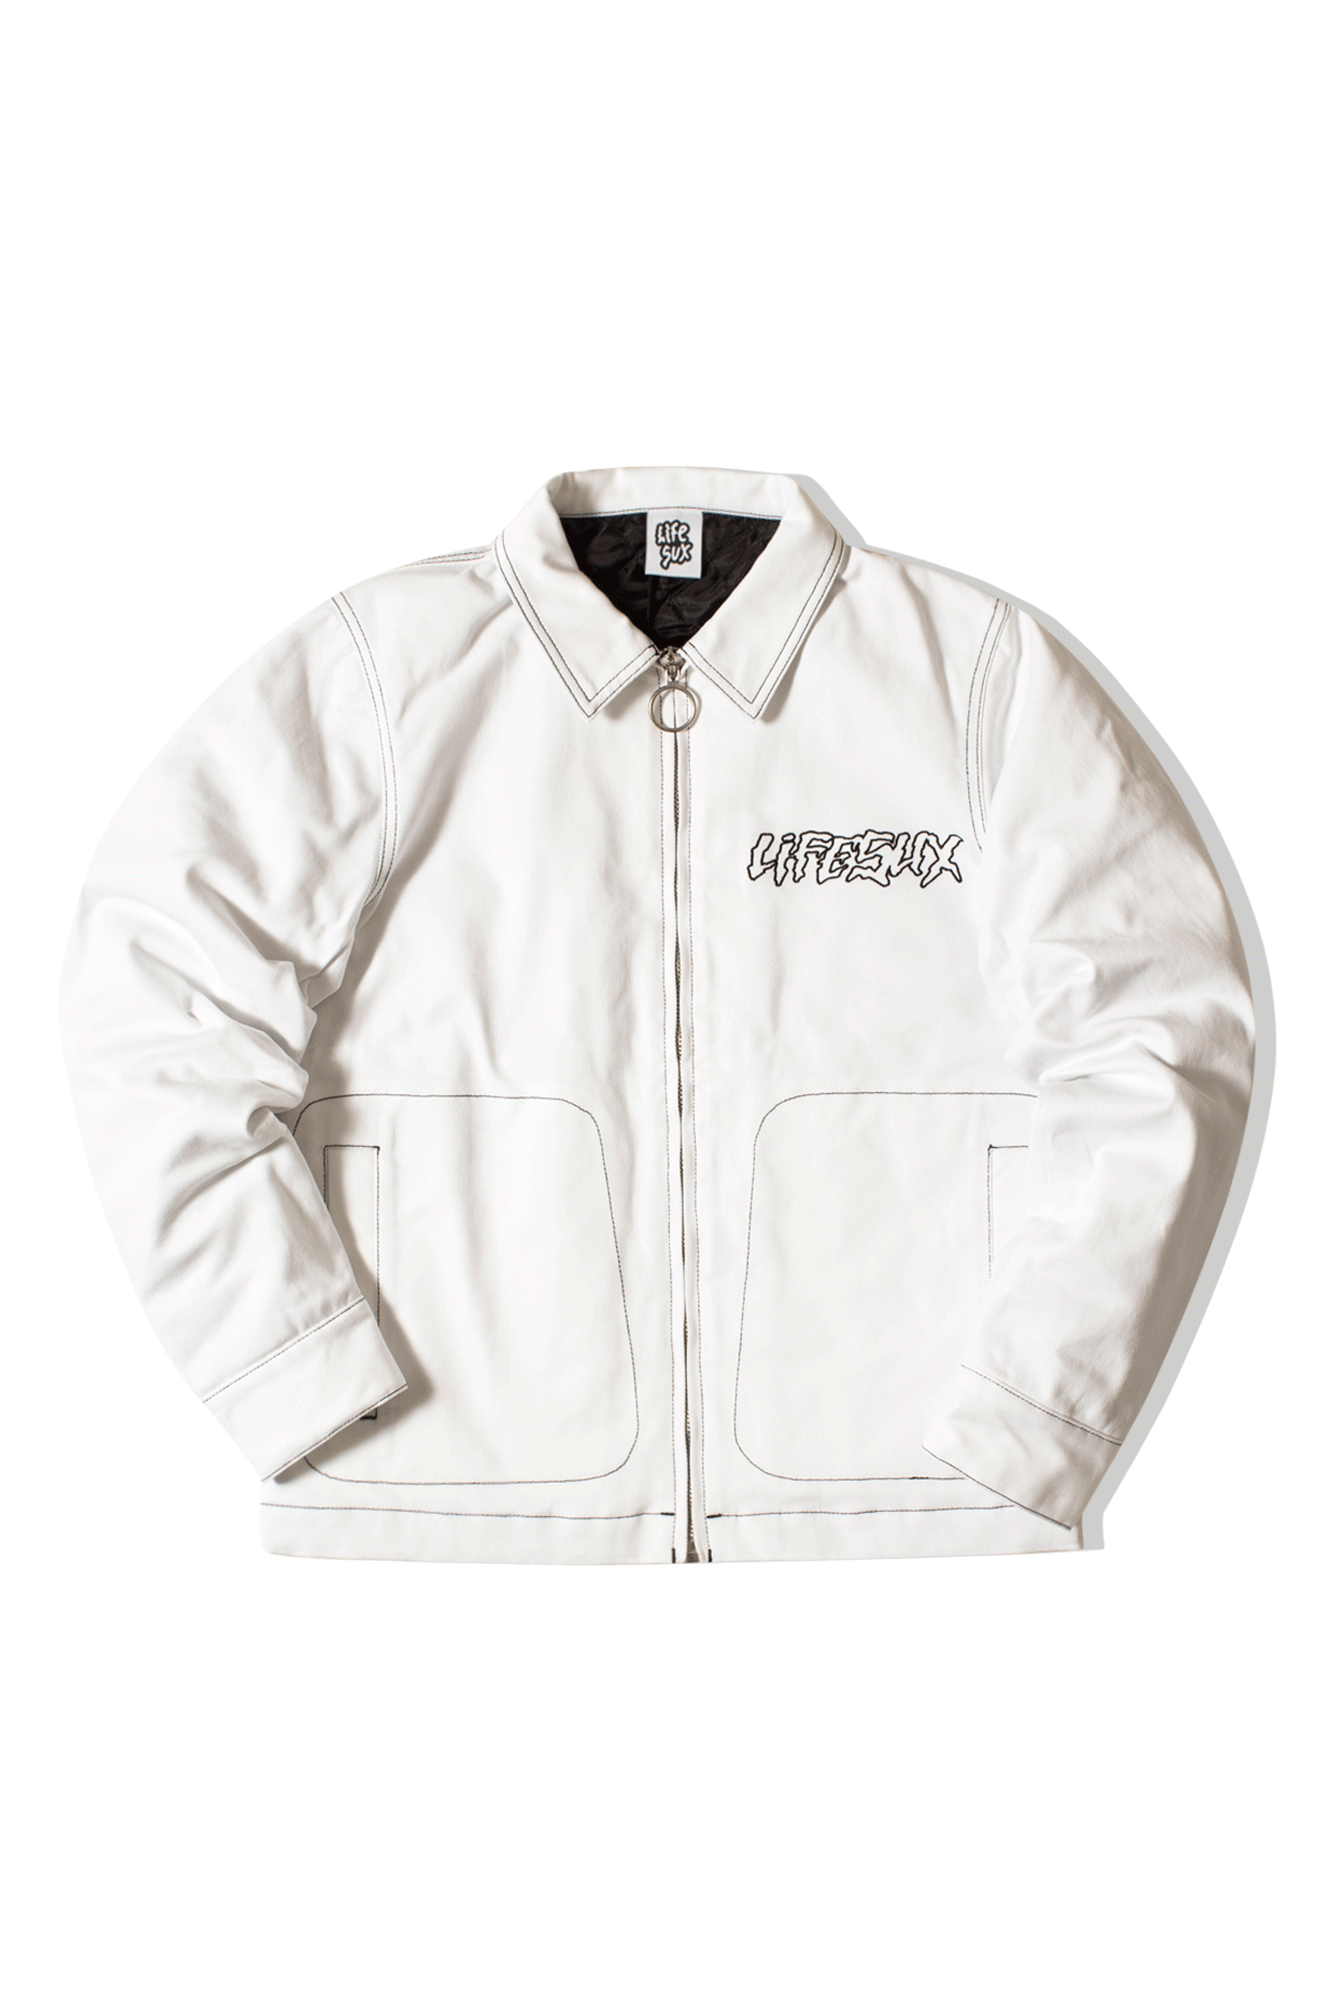 WORKER JACKET White